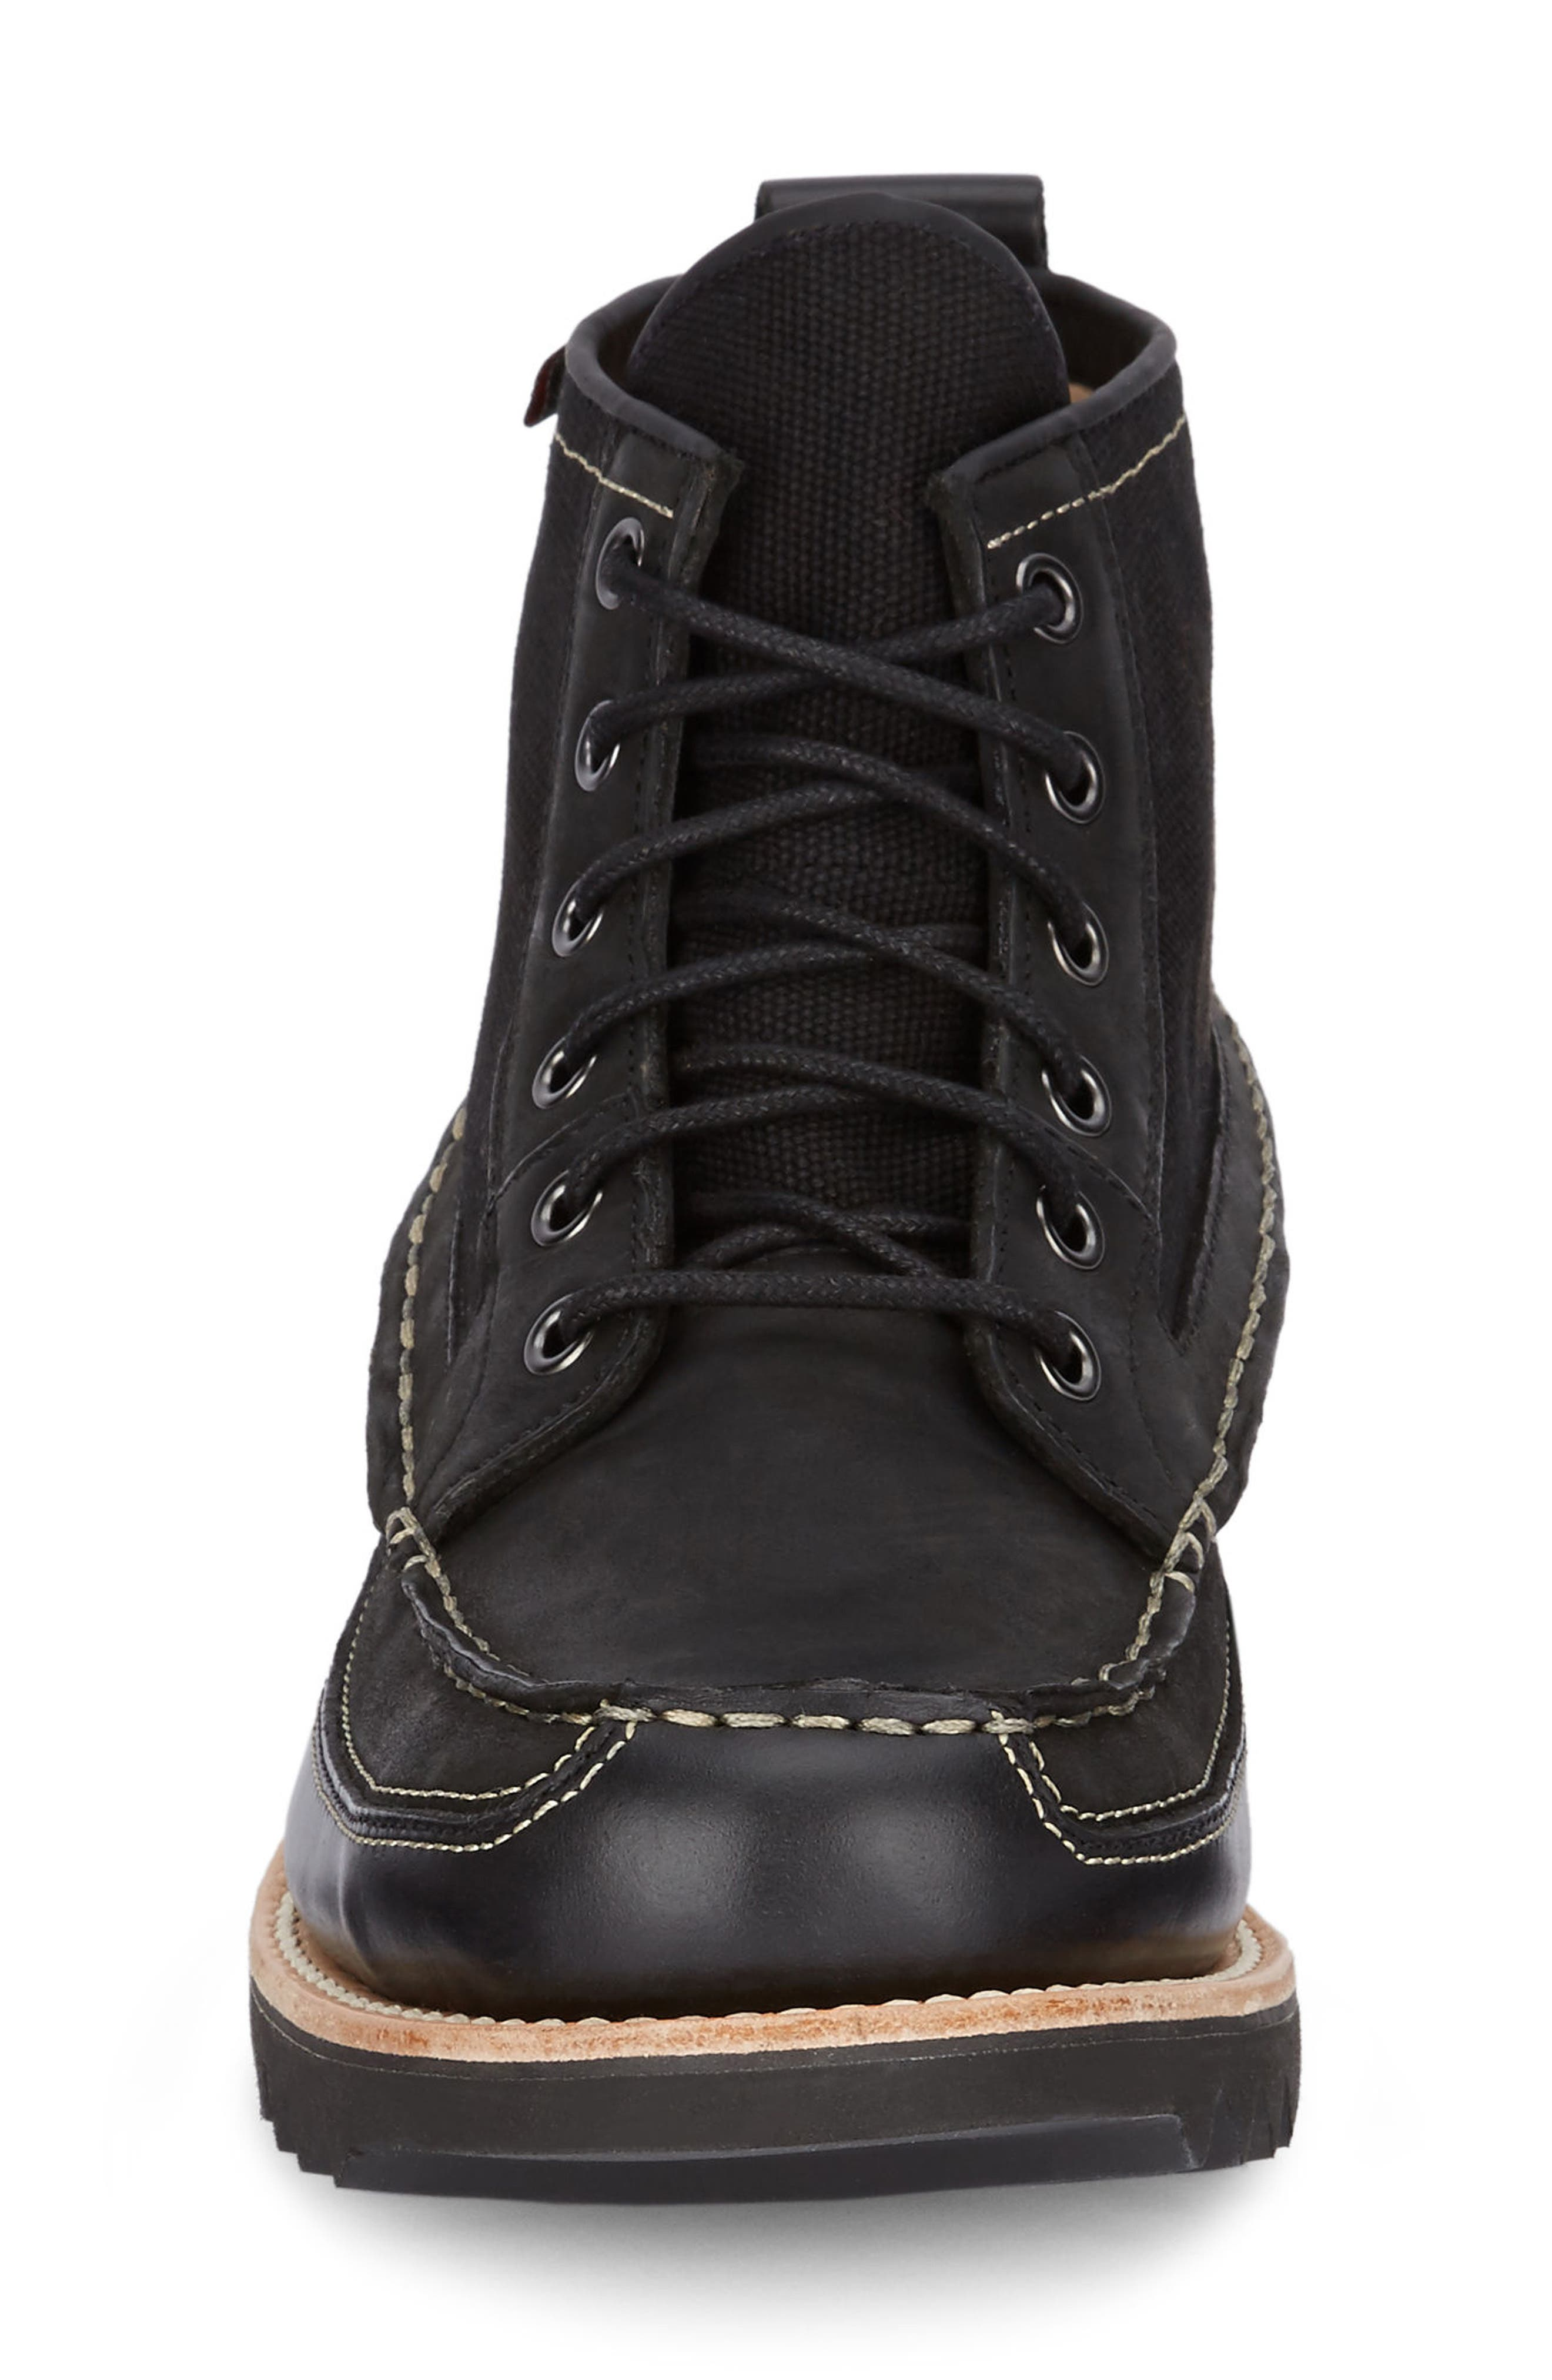 Nickson Razor Moc Toe Boot,                             Alternate thumbnail 4, color,                             001